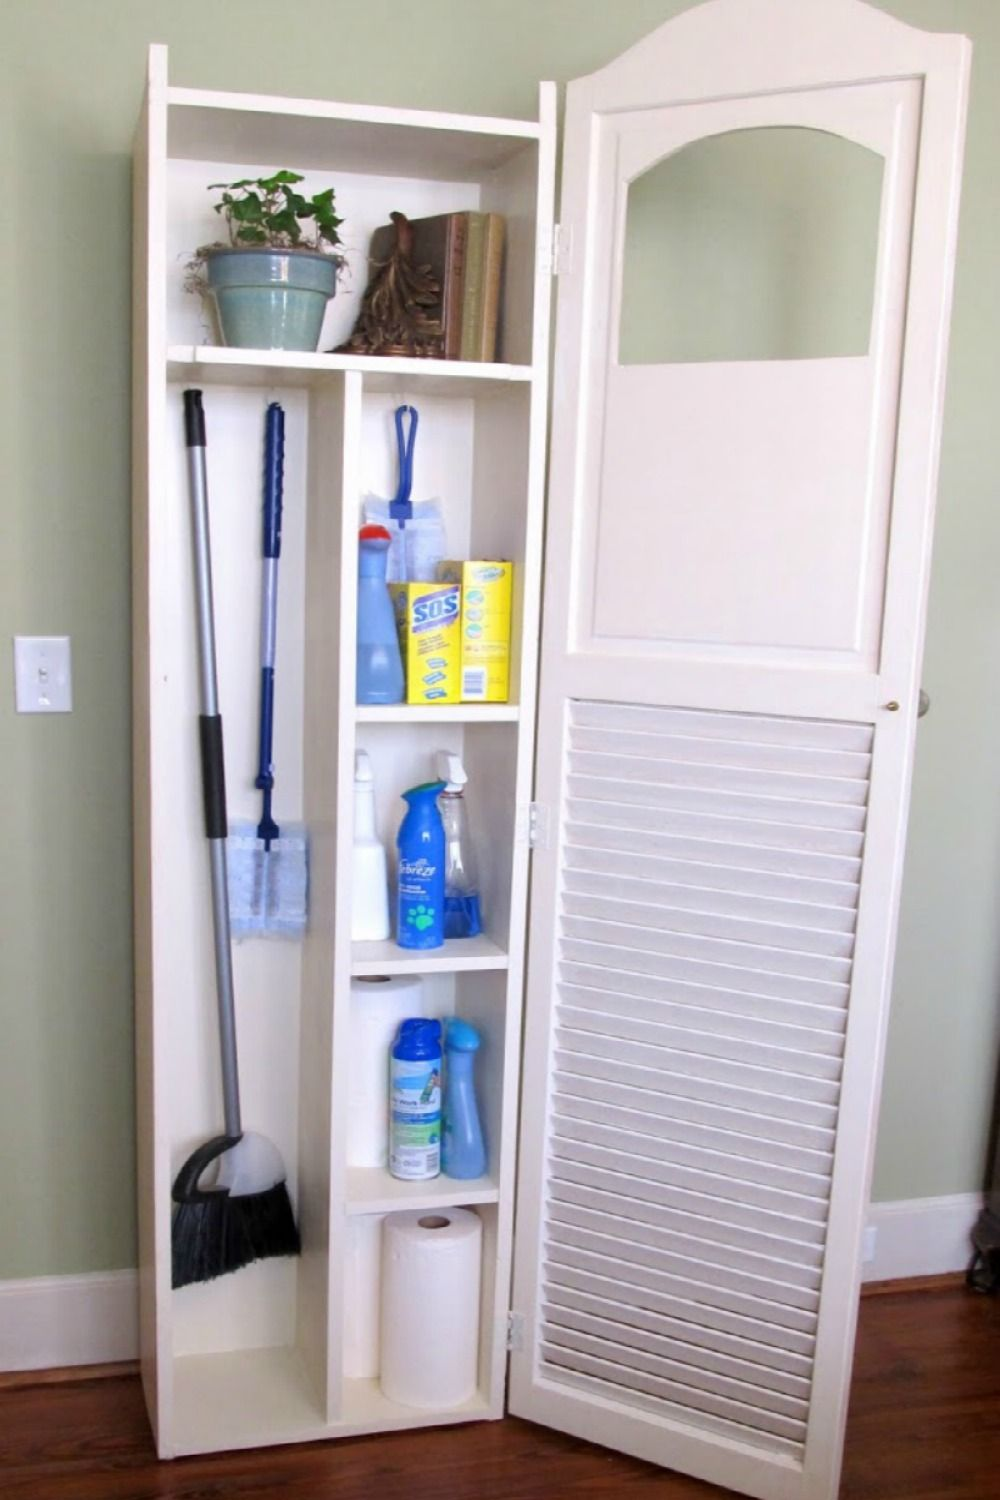 services cary areas knightdale in raleigh office cabinet cleaning durham tigerdry post service chapel img garner dt professional nc surrounding hill janitorial